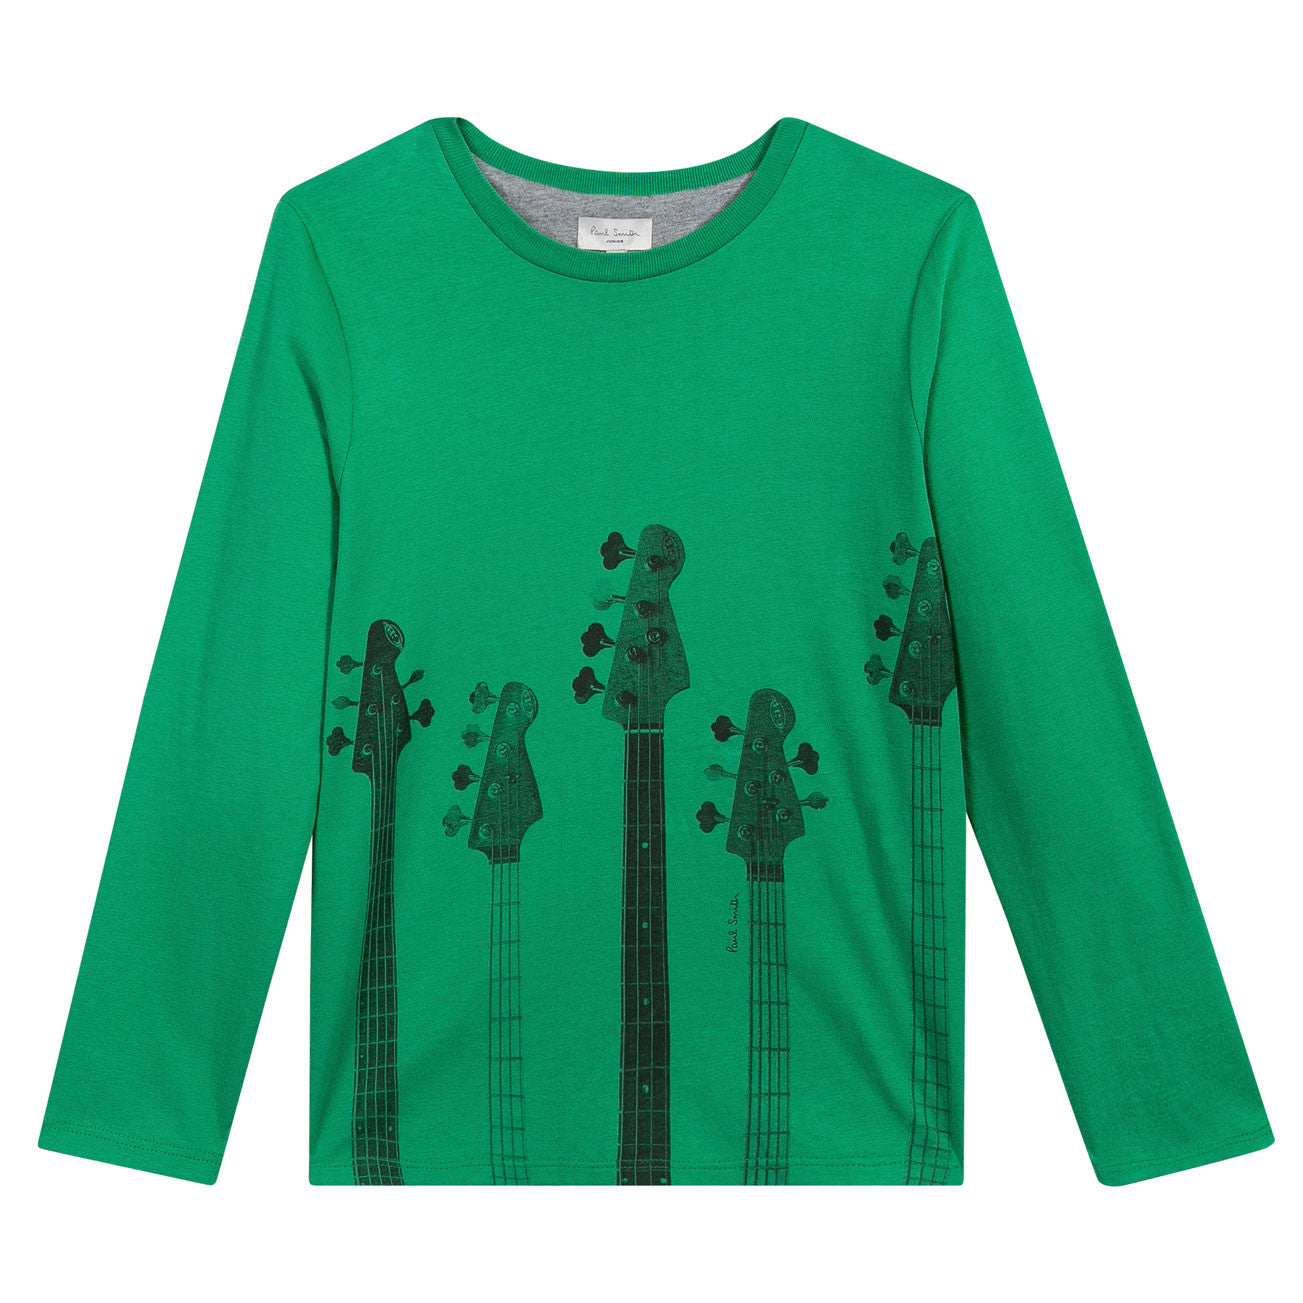 Paul Smith Junior True Green Guitar Tee - Ladida